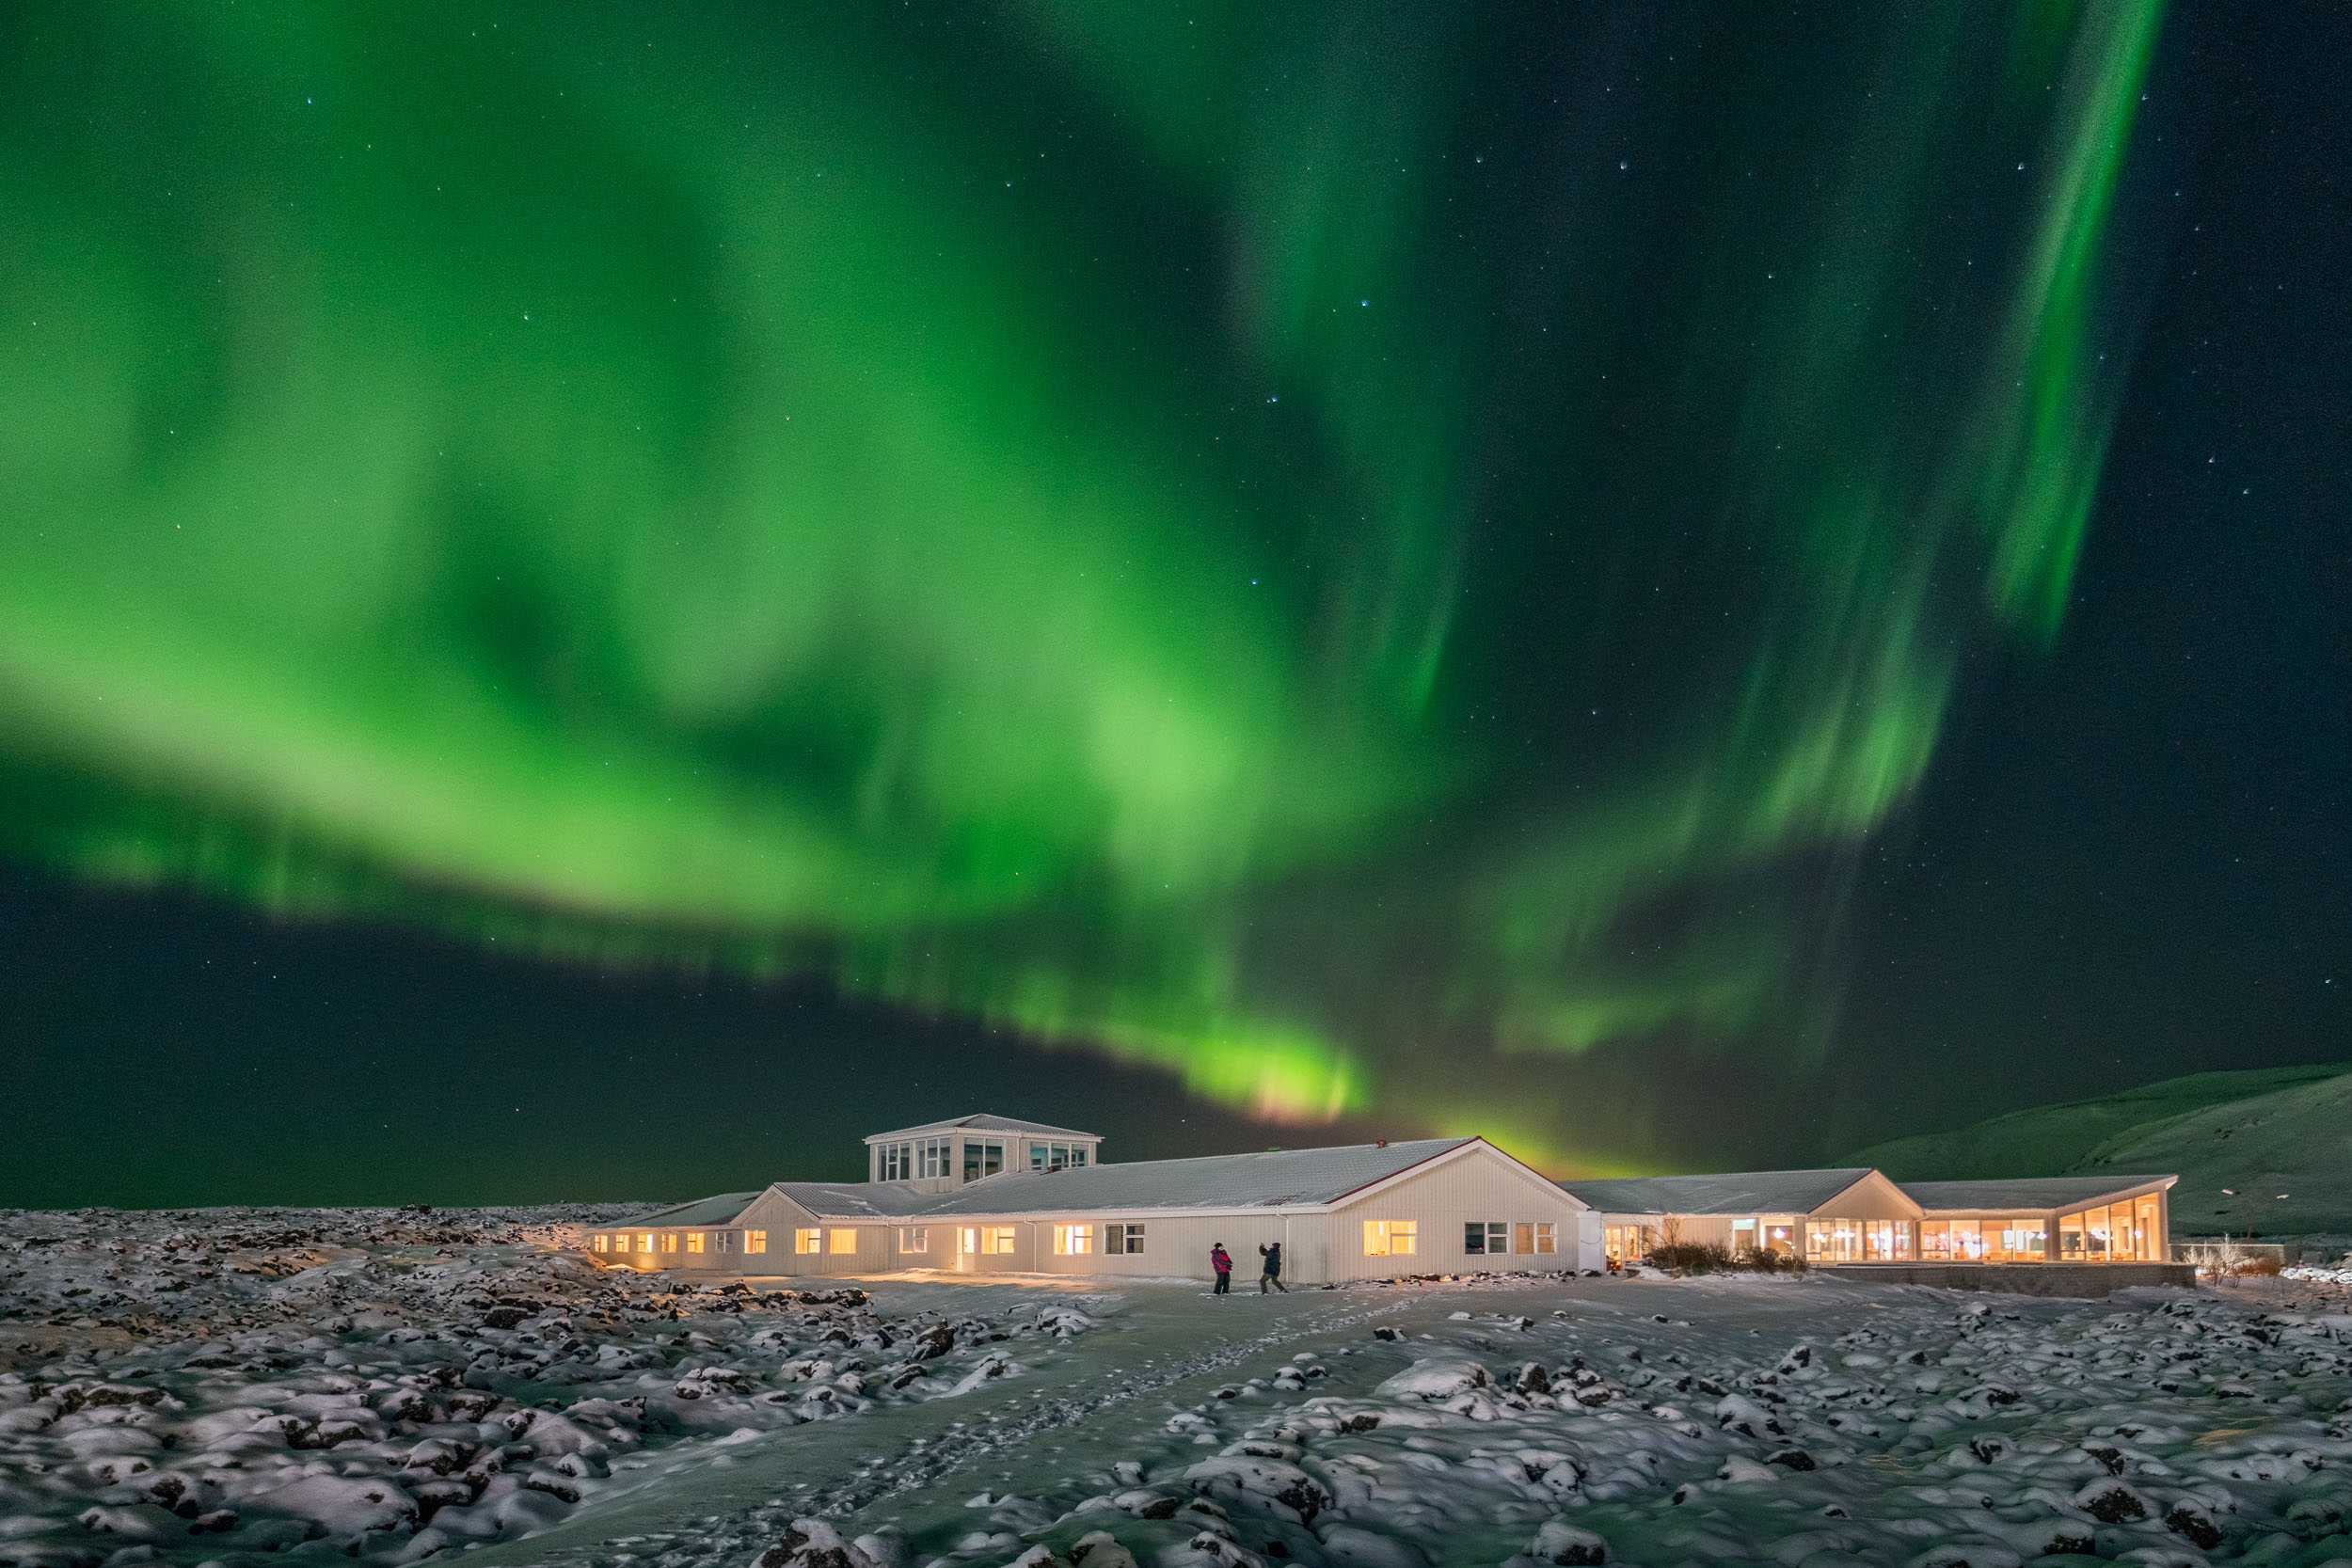 Aurora Borealis dancing above Northern Light Inn, Iceland .